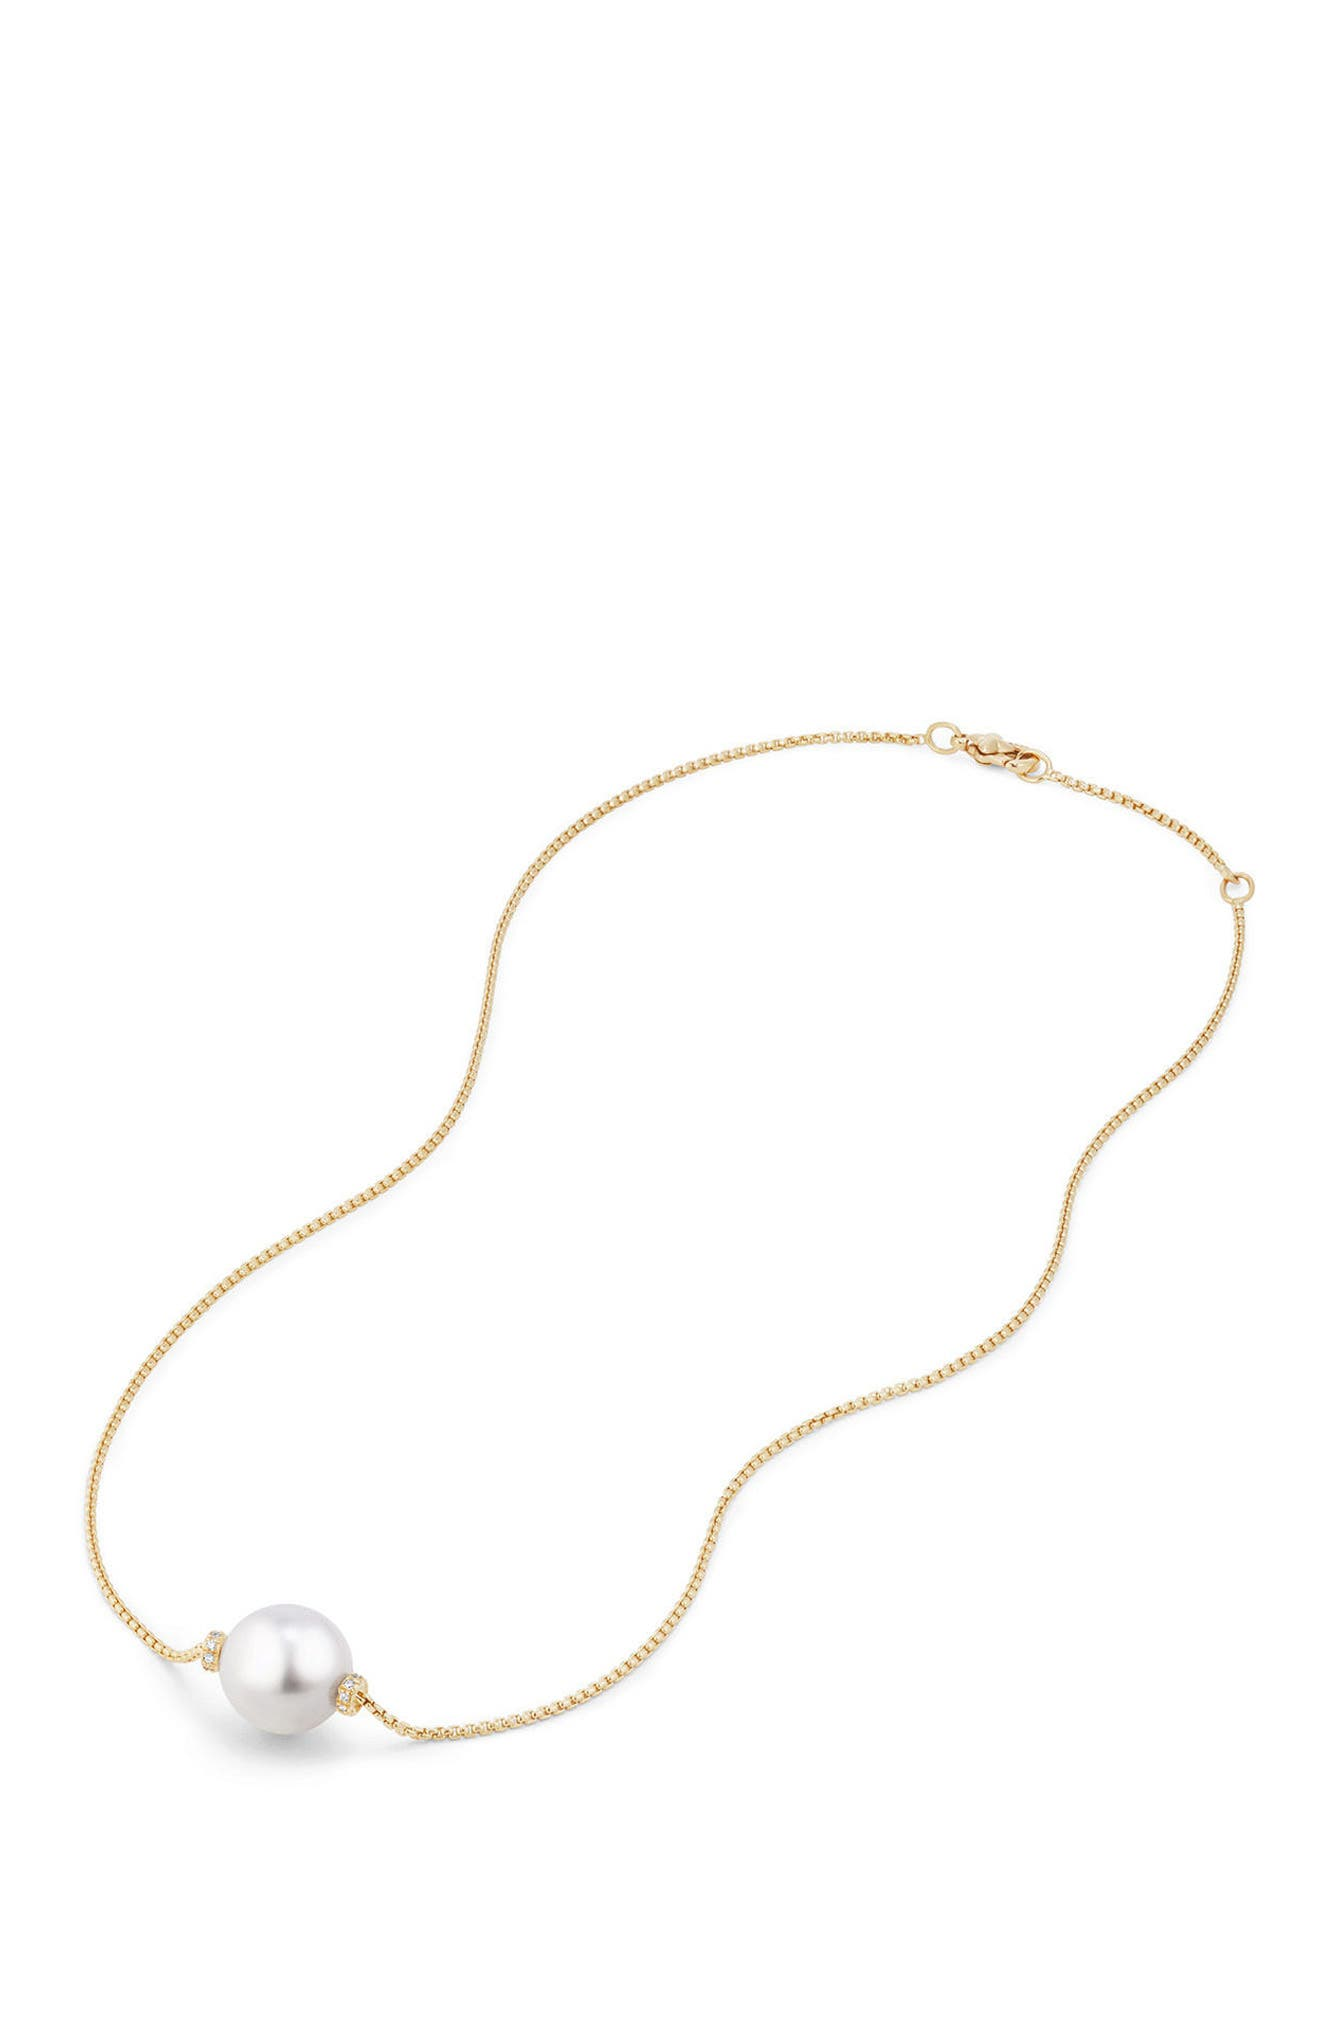 Solari Pearl Station Necklace,                             Alternate thumbnail 2, color,                             YELLOW GOLD/ SOUTH SEA WHITE